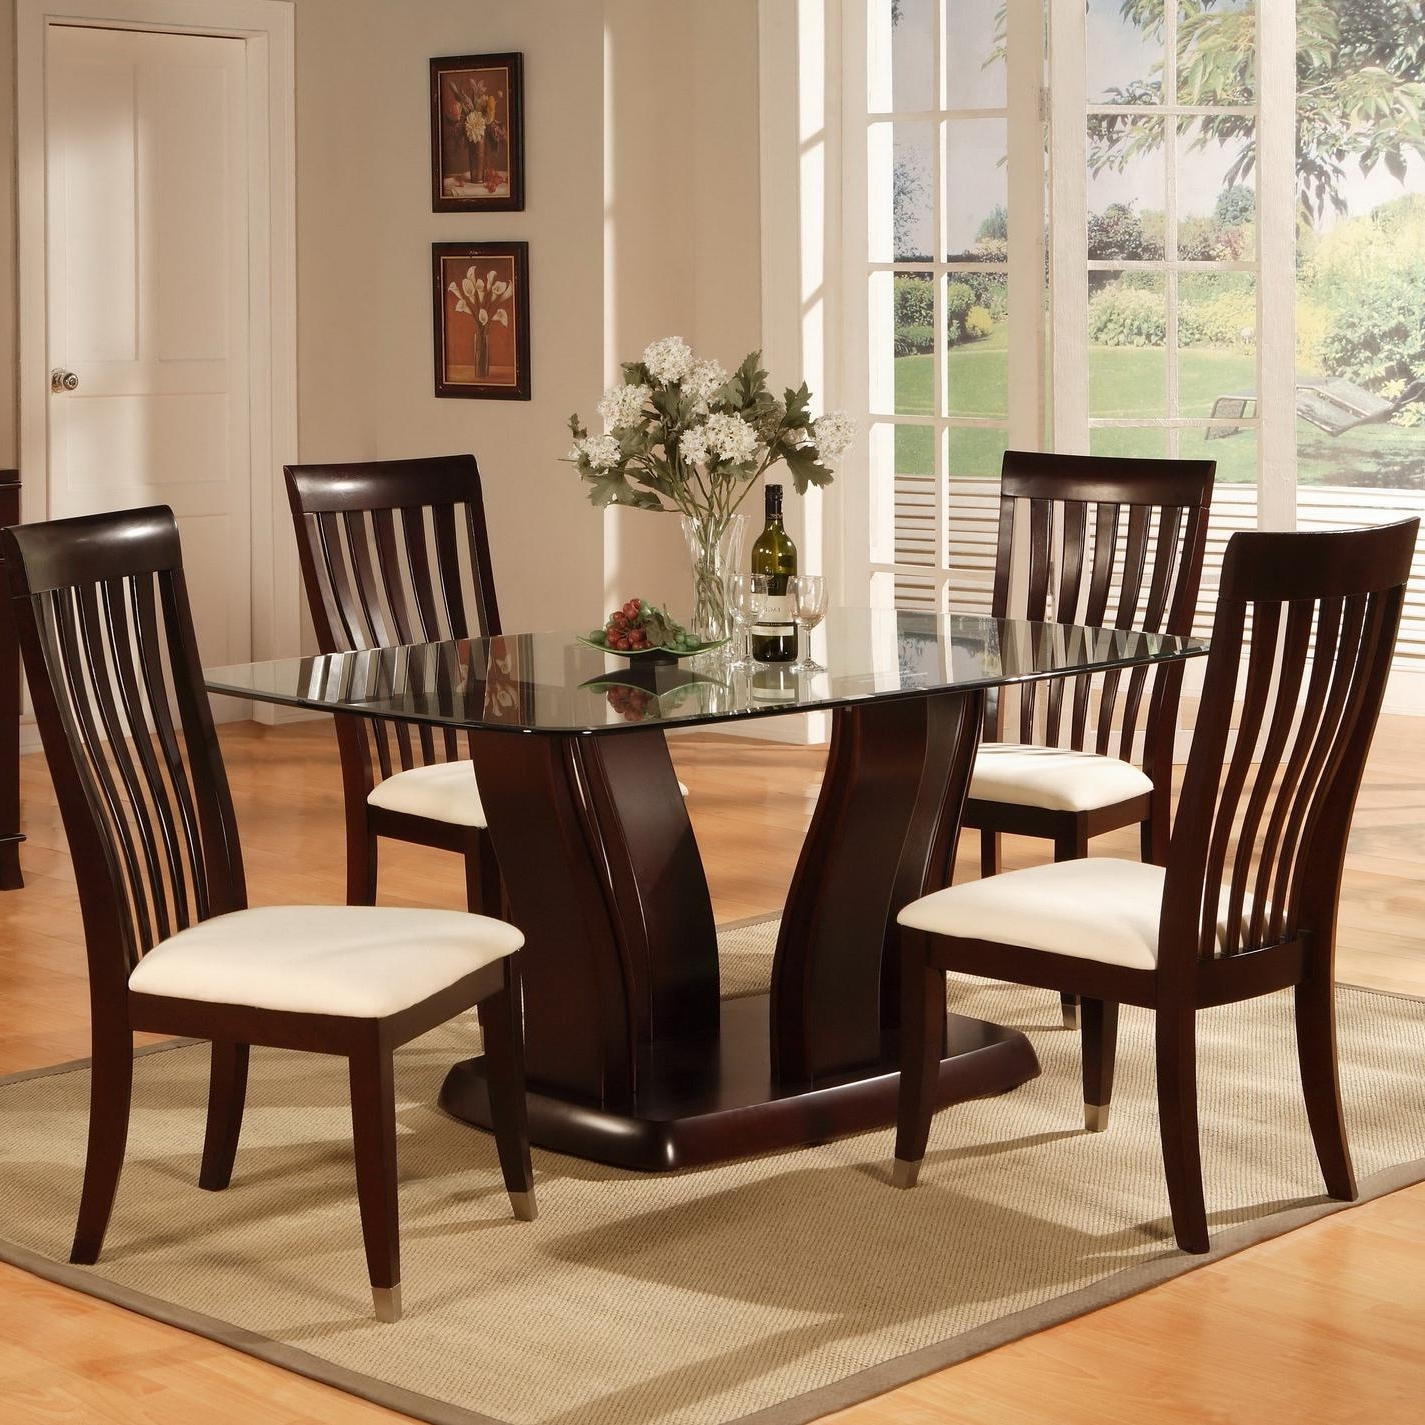 Most Recently Released New York Dining Tables Pertaining To Holland House New York 5 Piece Dining Table And Chair Set (View 23 of 25)